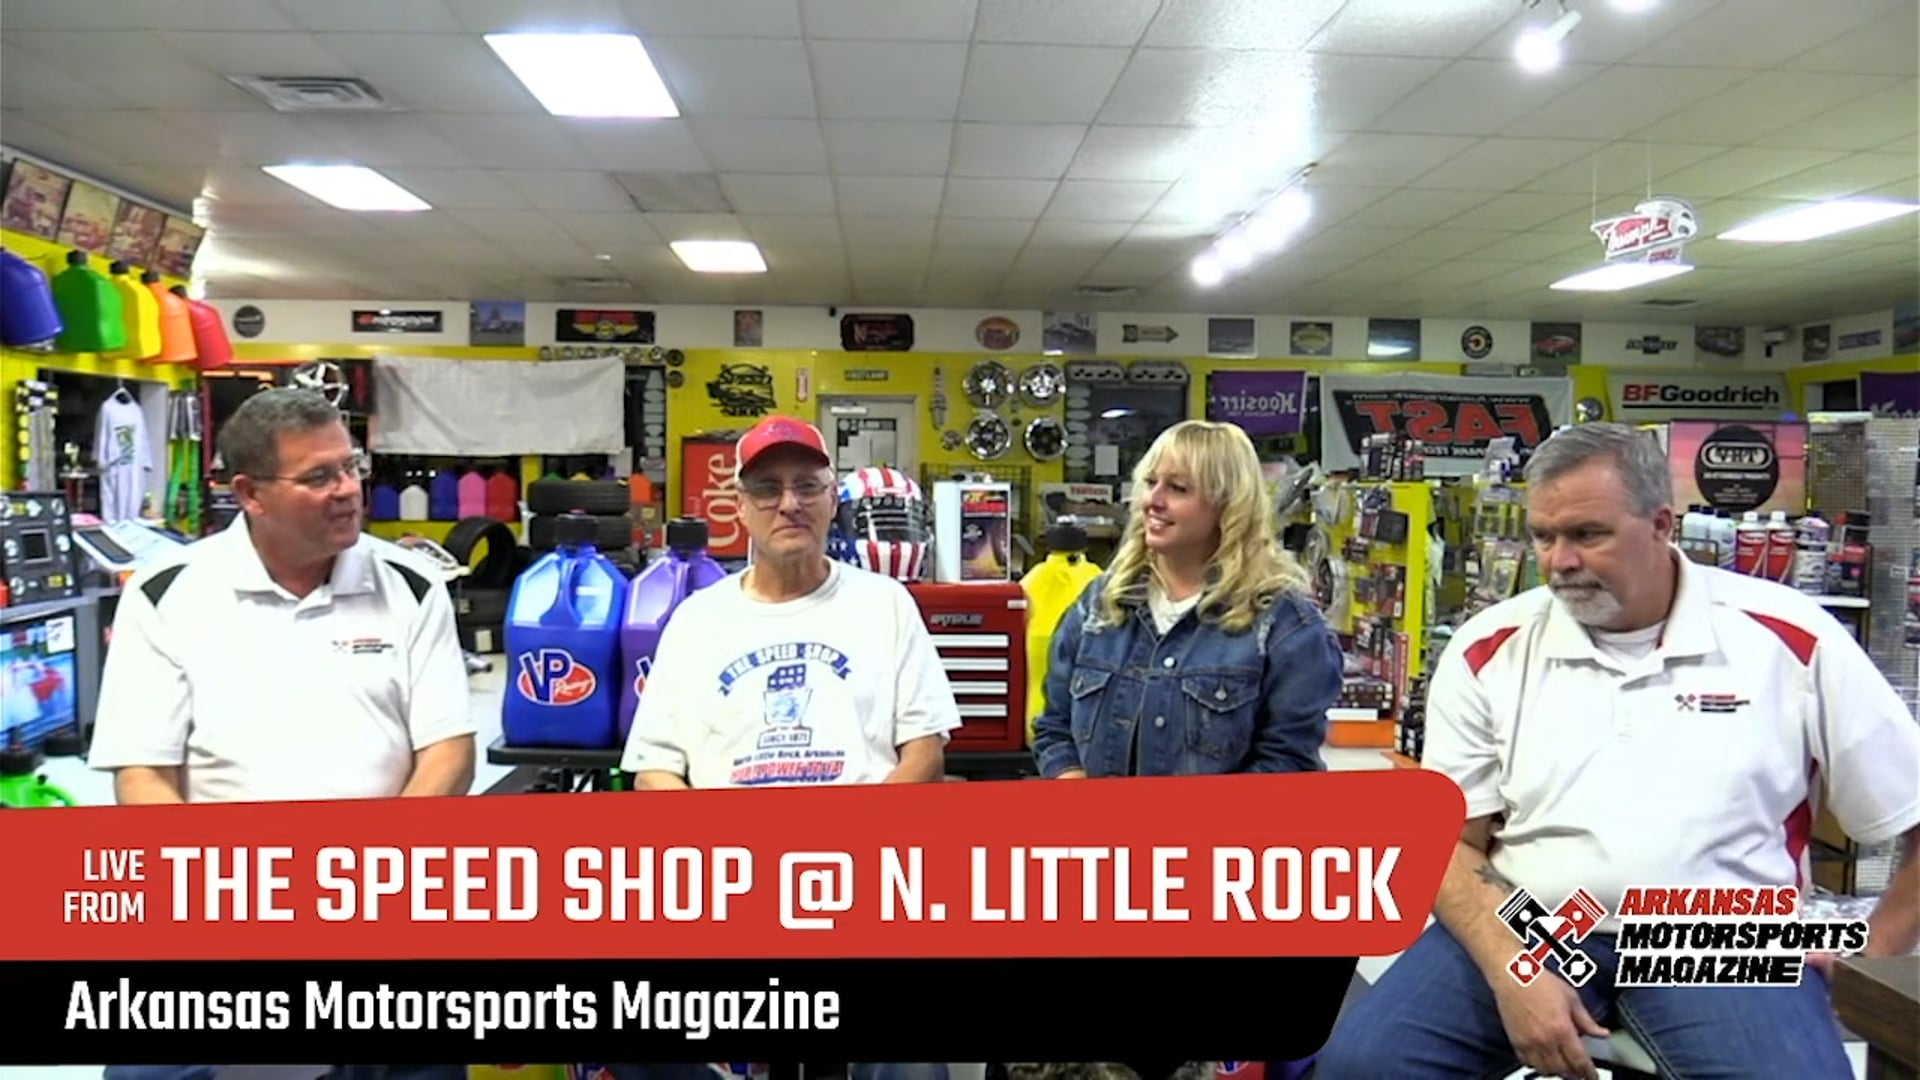 TUESDAY NIGHT TUNE UP - S1 E6 - North Little Rock at The Speed Shop